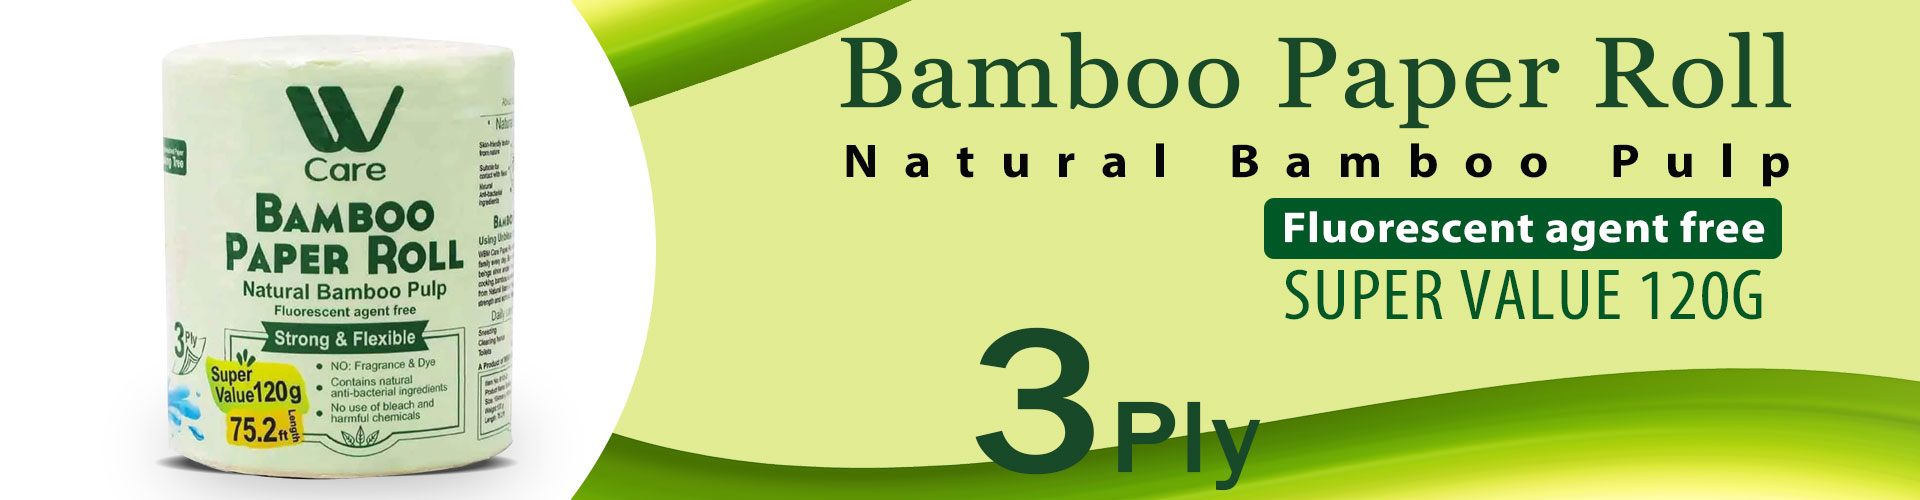 Bamboo Paper Roll